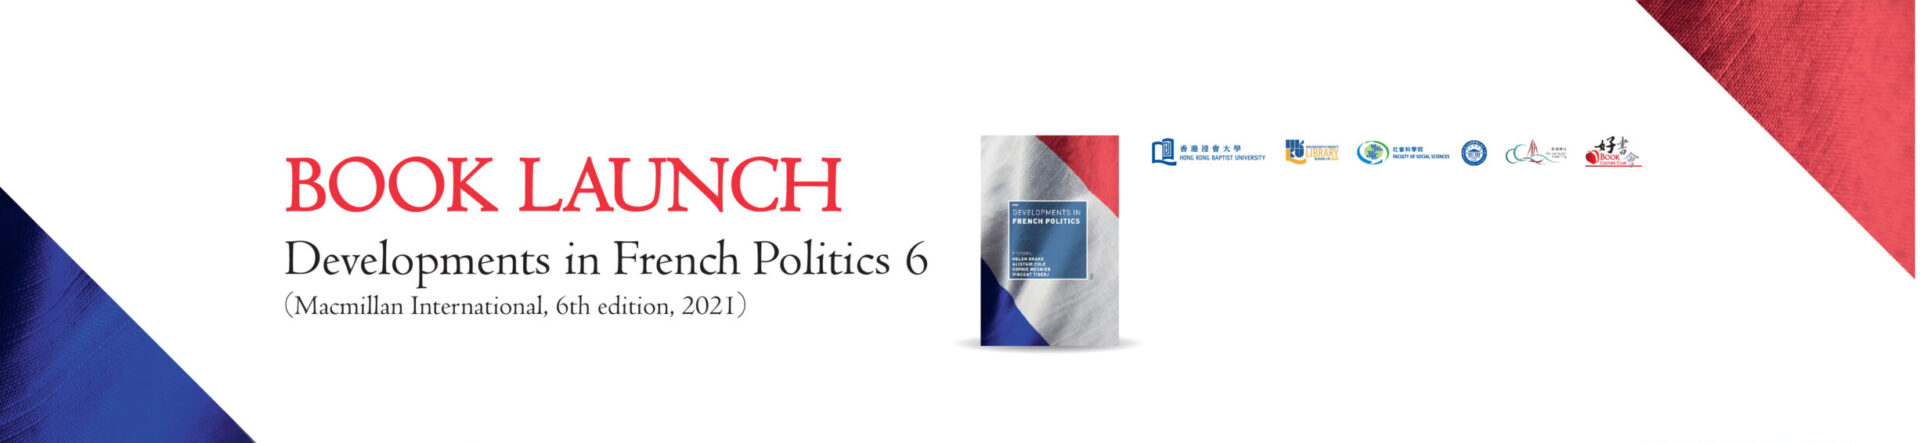 Book Culture Club 44th Round – Book Launch: Developments in French Politics 6 (Macmillan International, 6th edition, 2021)